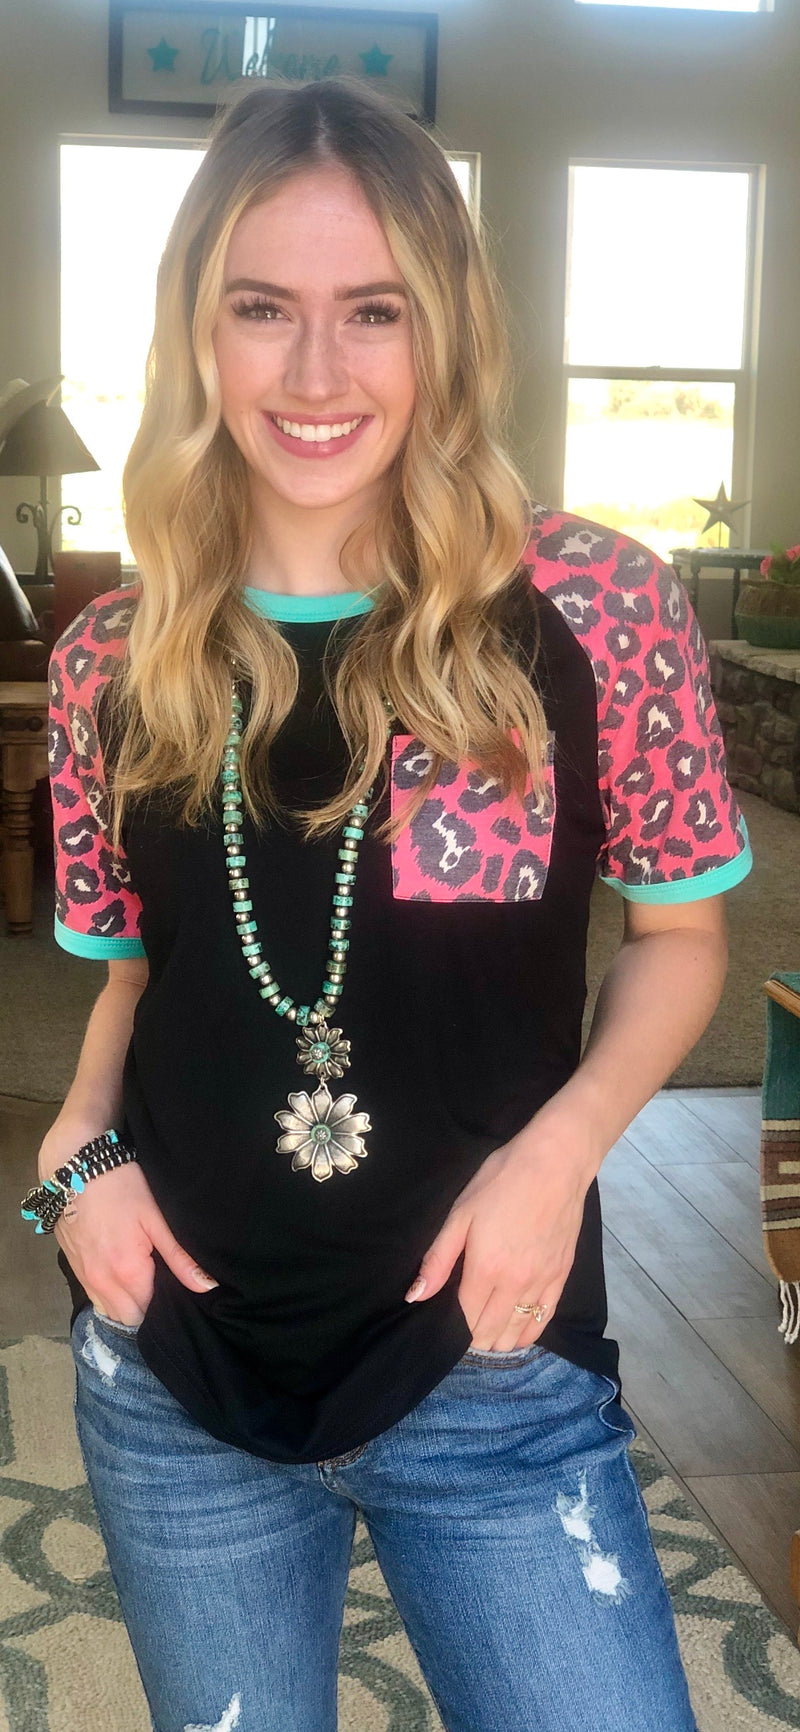 The Turquoise & Pink Jungle Cat Top